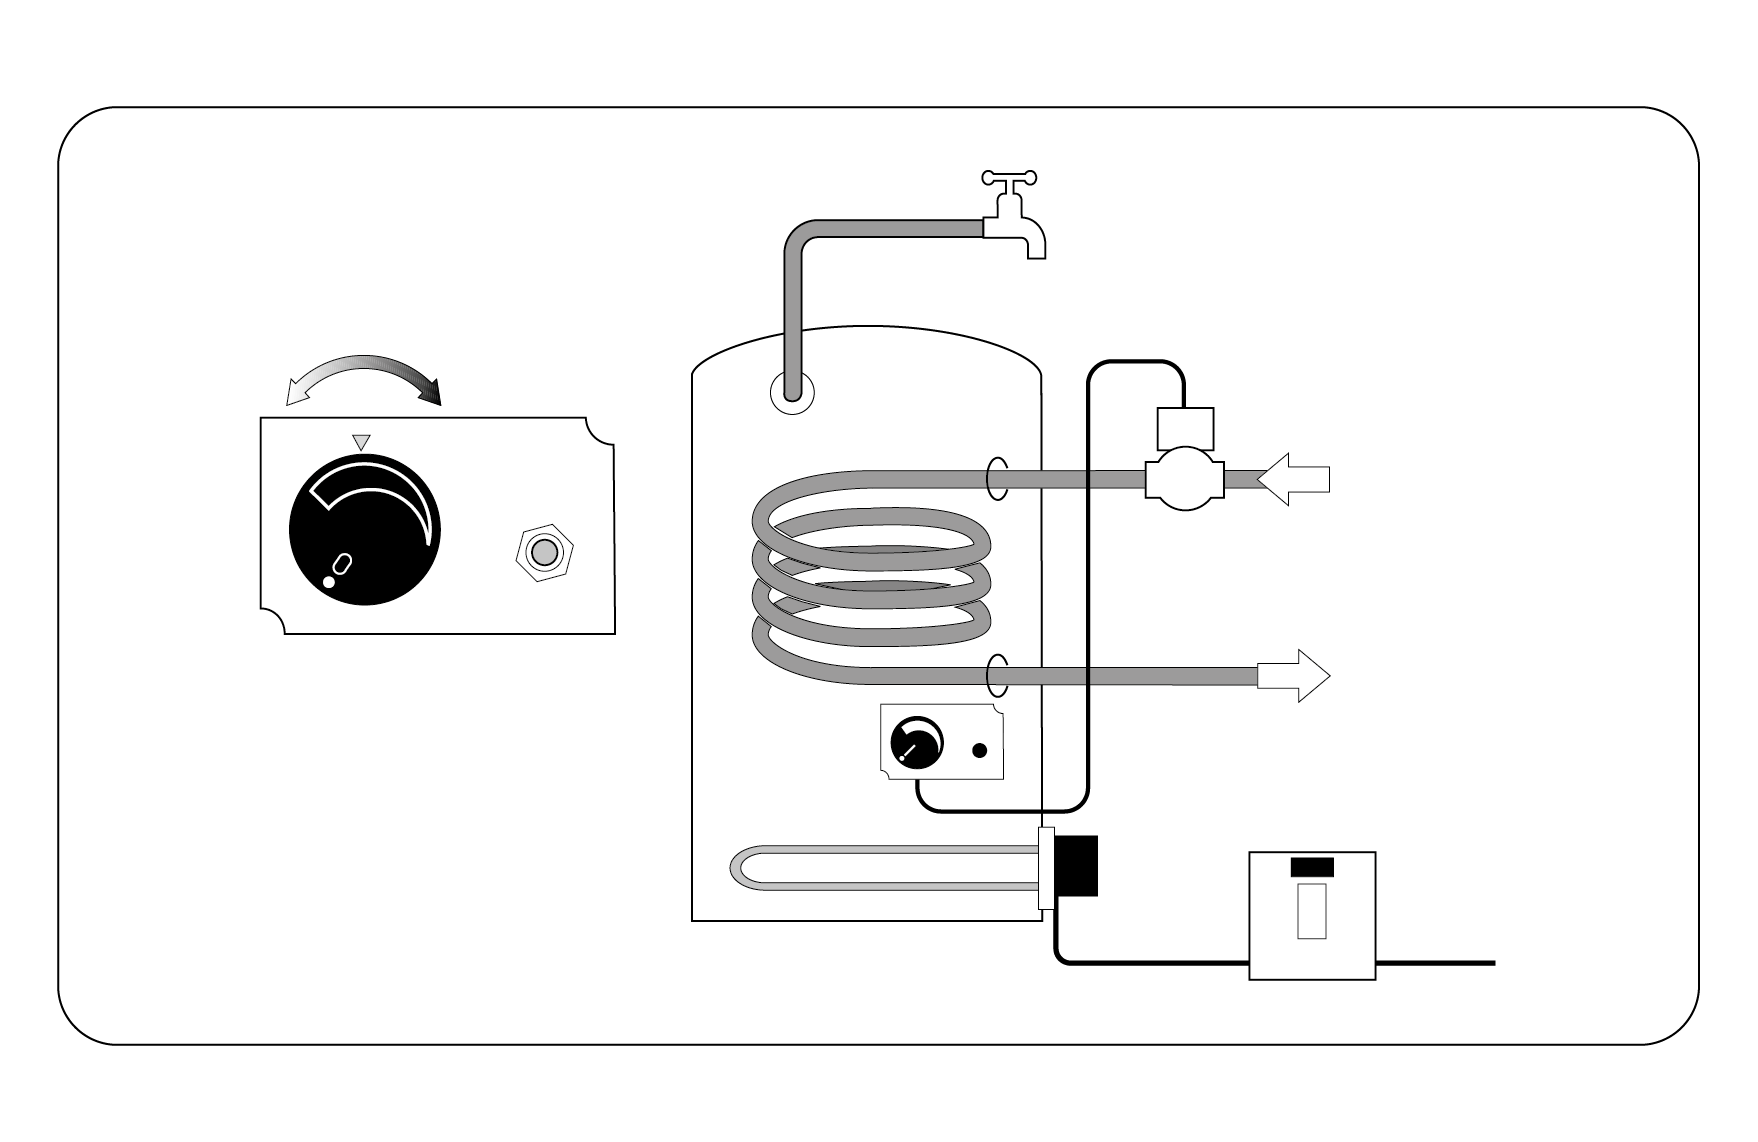 DHW Demand by instantaneous water heaters